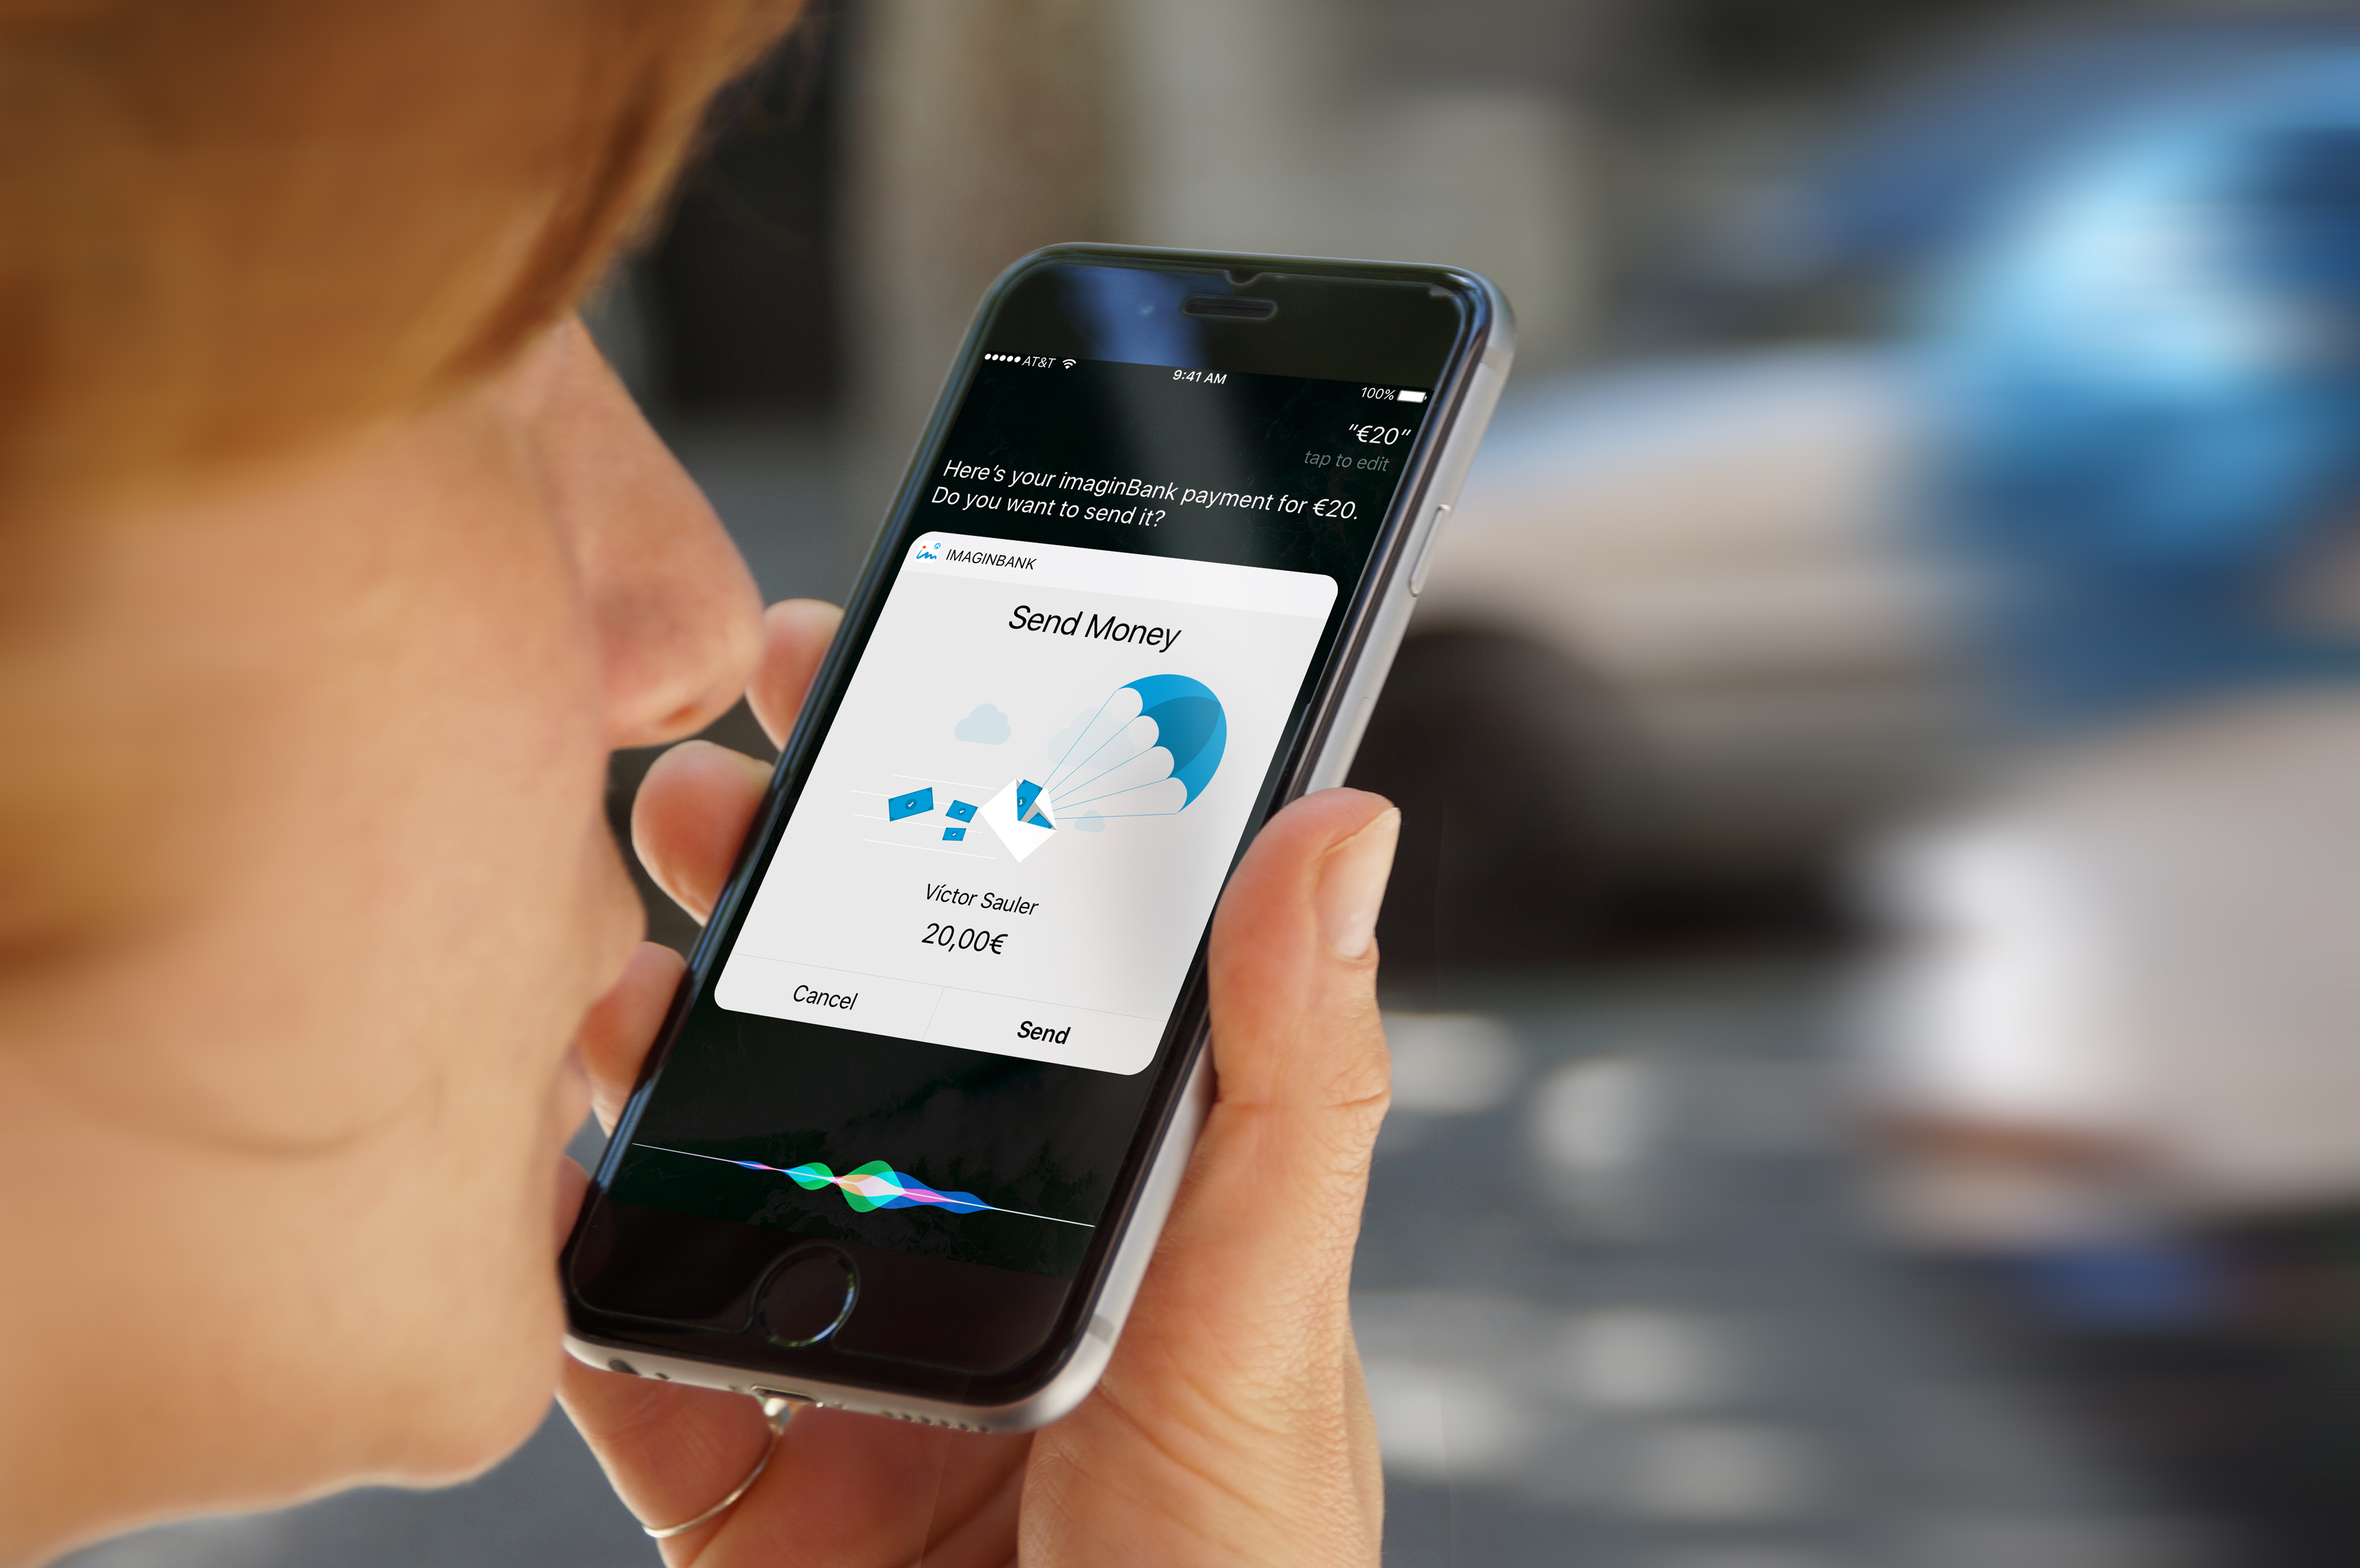 Caixabank Launches A Money Transfer Service For Iphones Using Siri Wiring To China Voice Commands